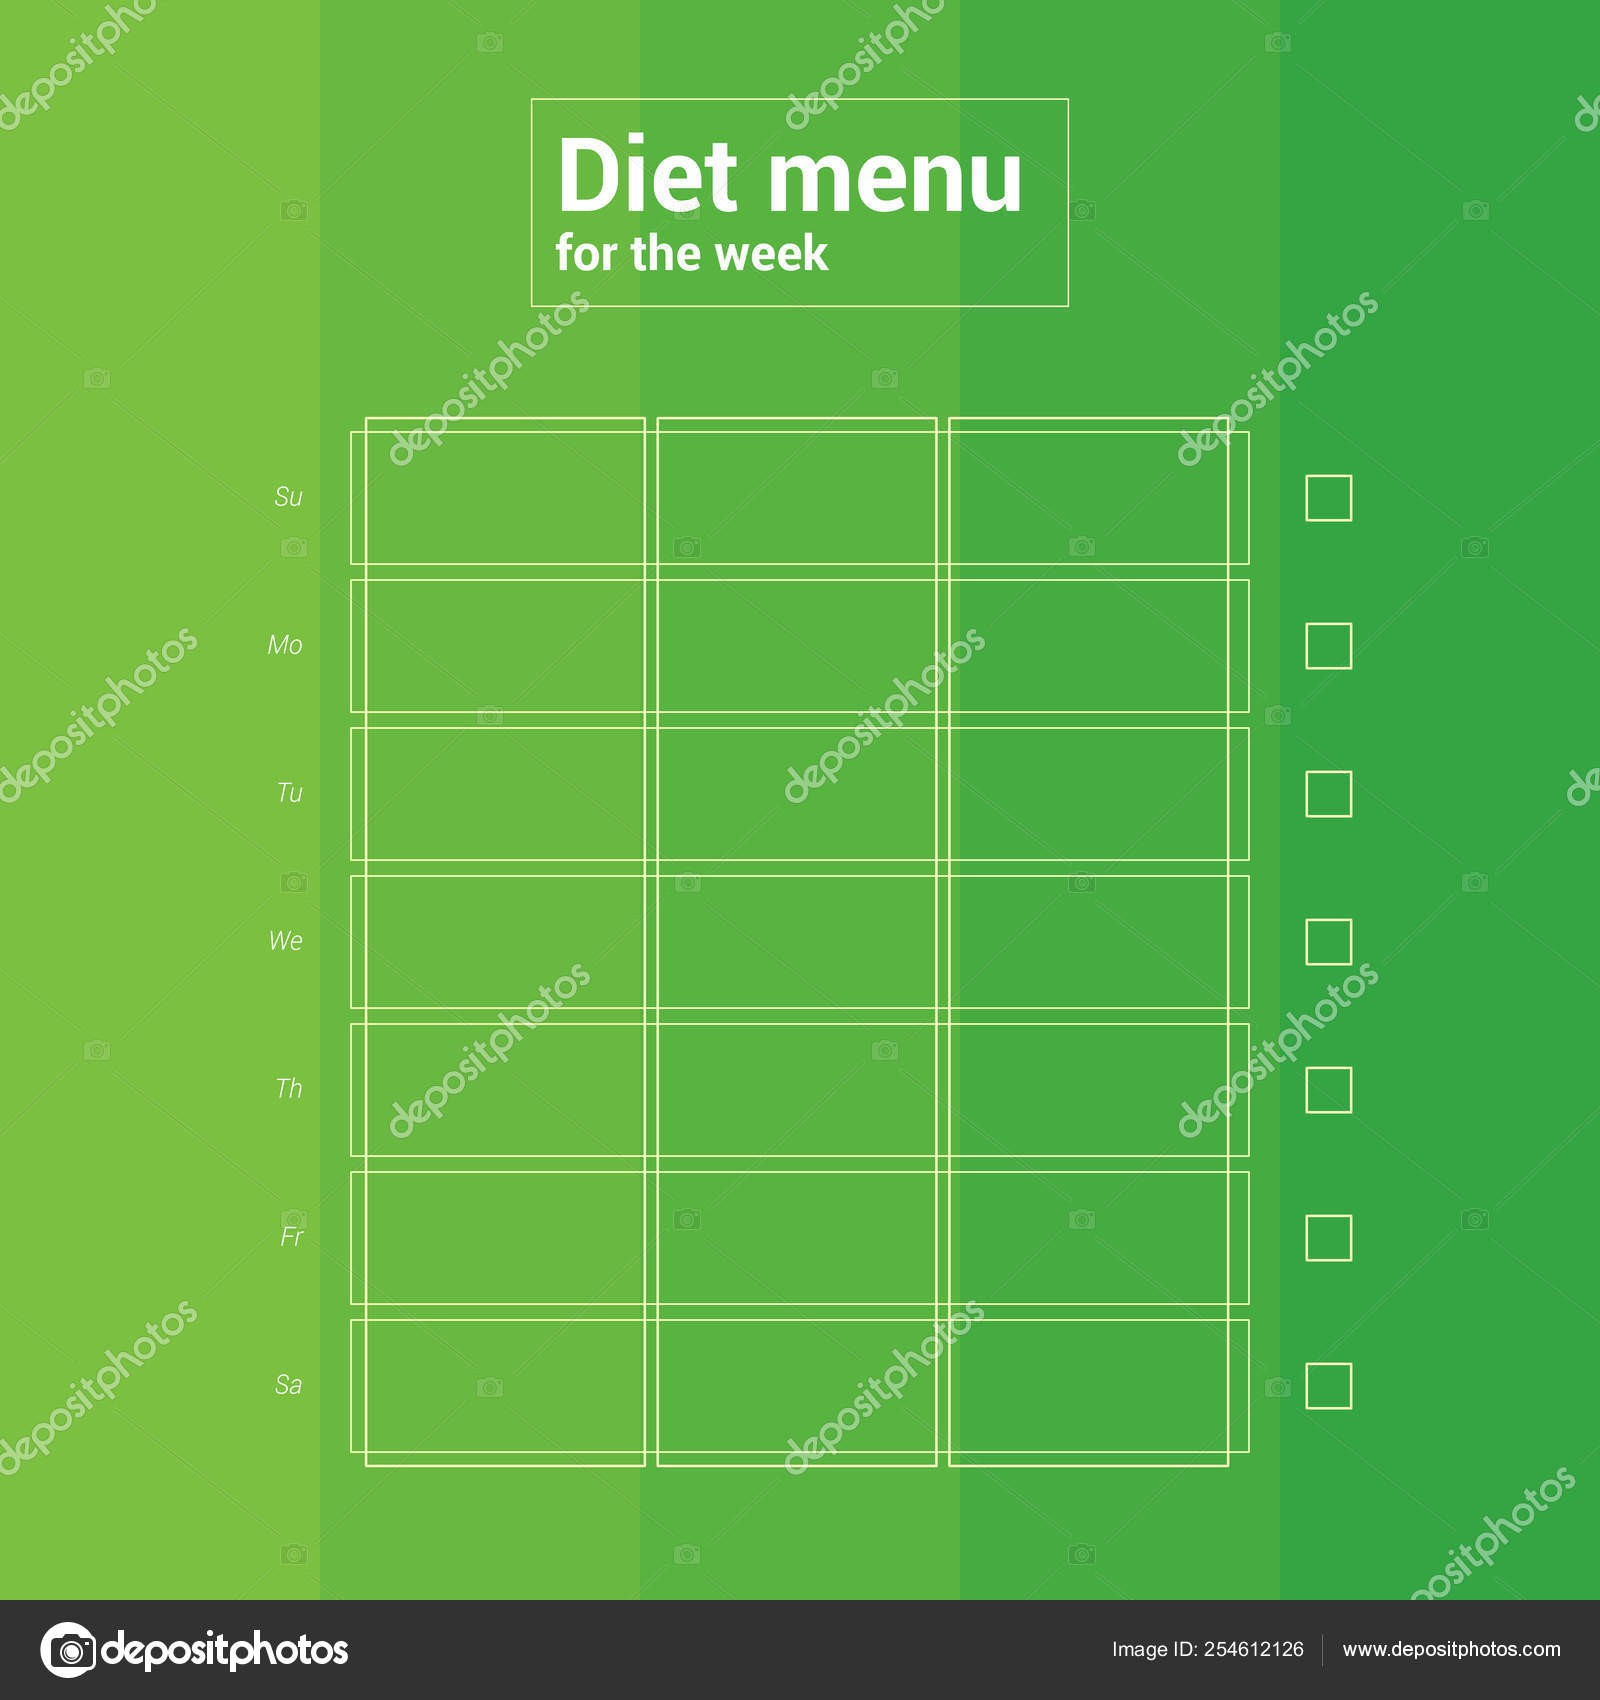 depositphotos stock illustration colorful weekly calendar meal planning